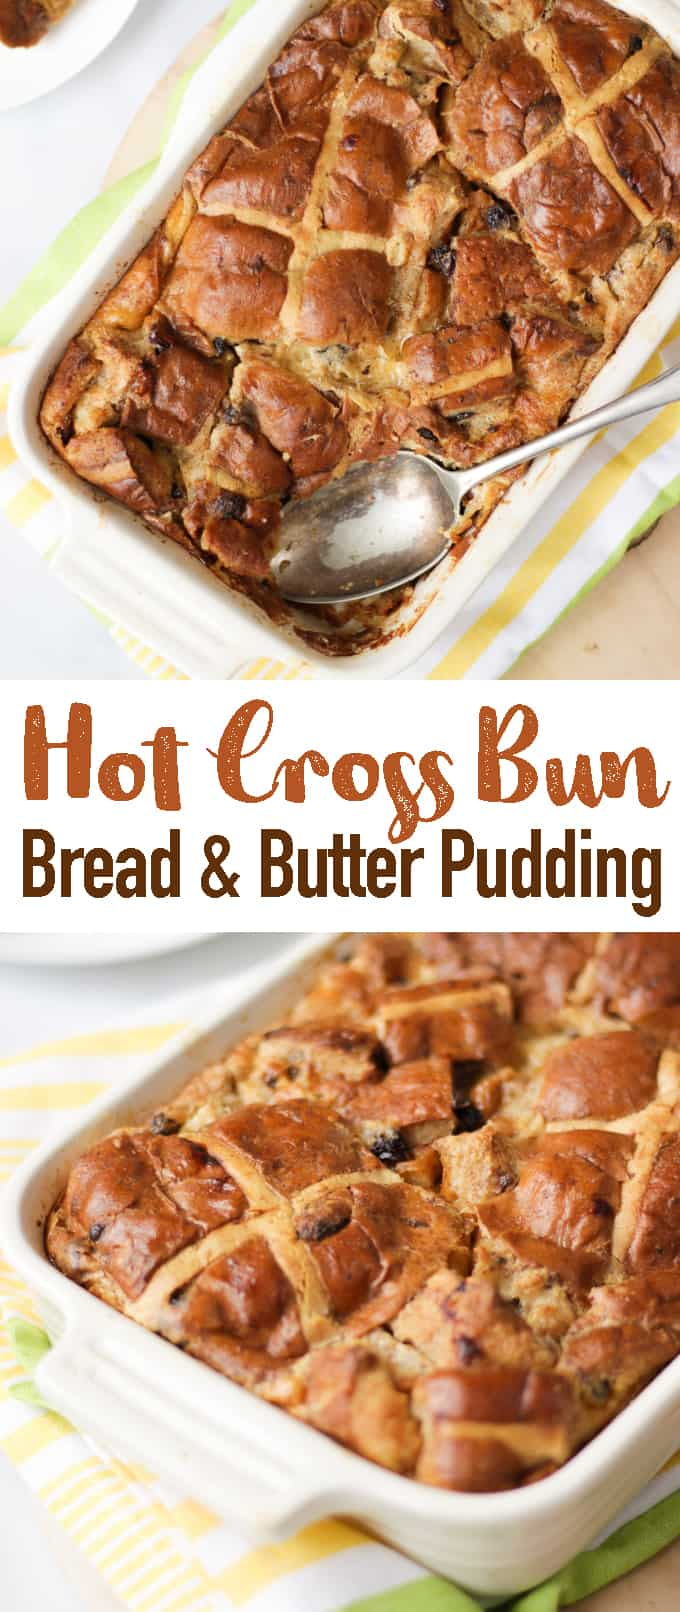 This Hot Cross Bun Bread and Butter Pudding is the perfect warming Easter dessert. Really simple to make using the traditional Easter Hot Cross Buns. It's also a great way to use up leftover buns, milk and cream. This Easter Pie is the tastiest end to your Easter lunch!